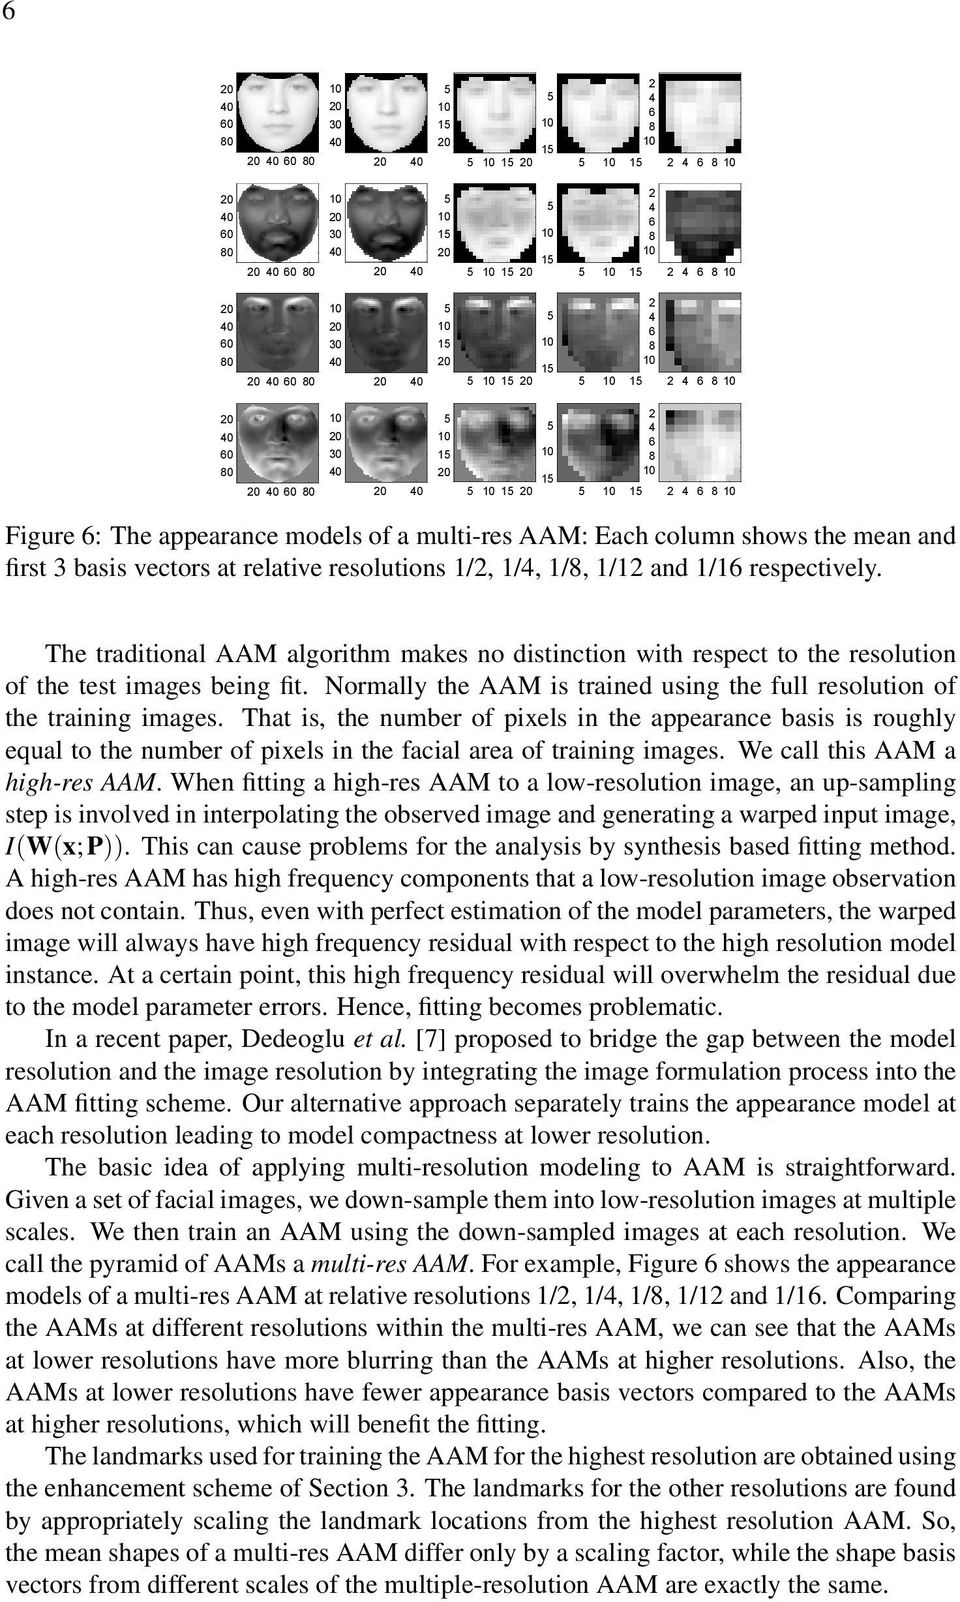 The traditional AAM algorithm makes no distinction with respect to the resolution of the test images being fit. Normally the AAM is trained using the full resolution of the training images.